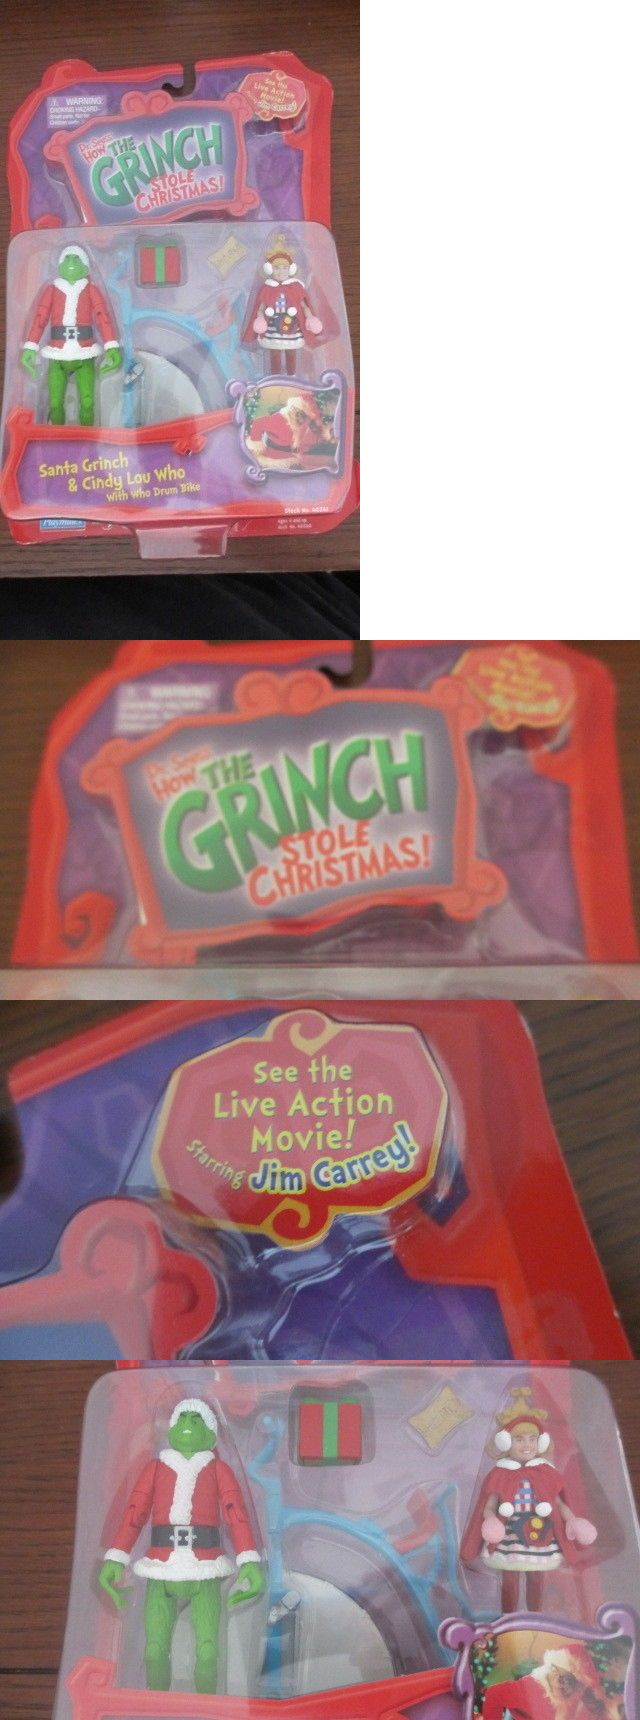 Dr Seuss 20906: Dr. Seuss How The Grinch Stole Christmas Playset- Santa Grinch And Cindy Lou Who -> BUY IT NOW ONLY: $34.99 on eBay!